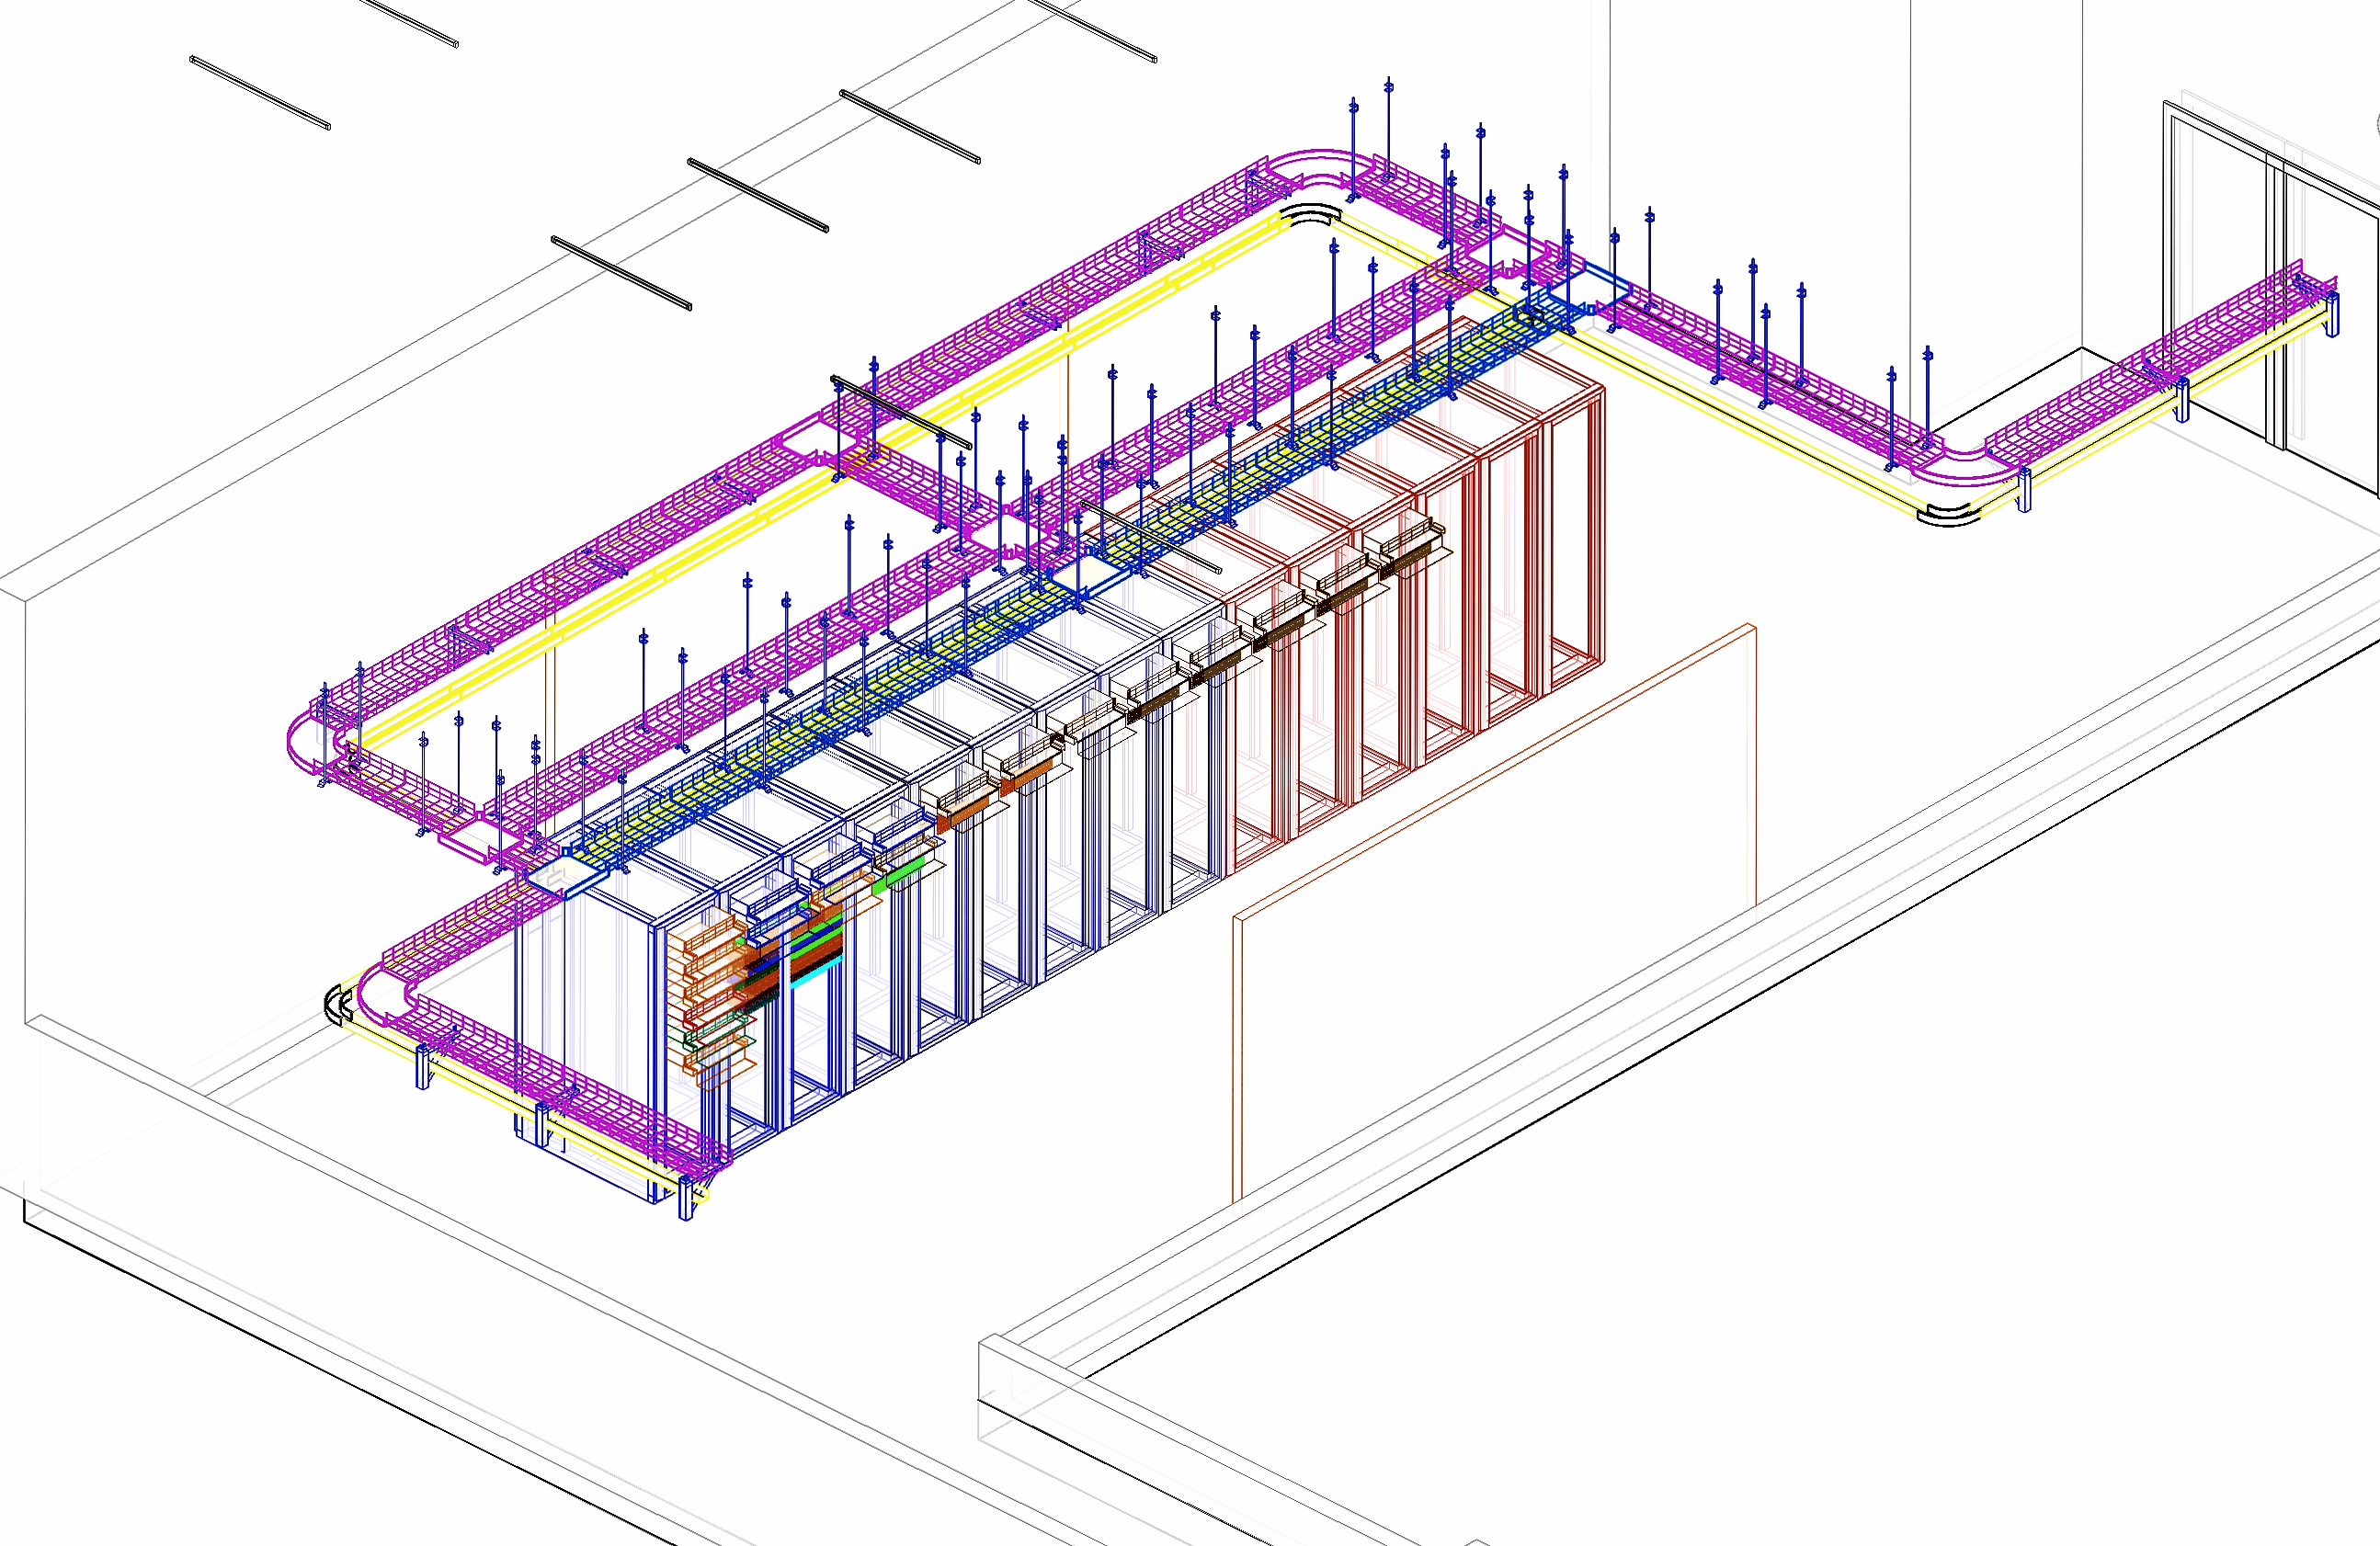 3d rederings of custom data centers